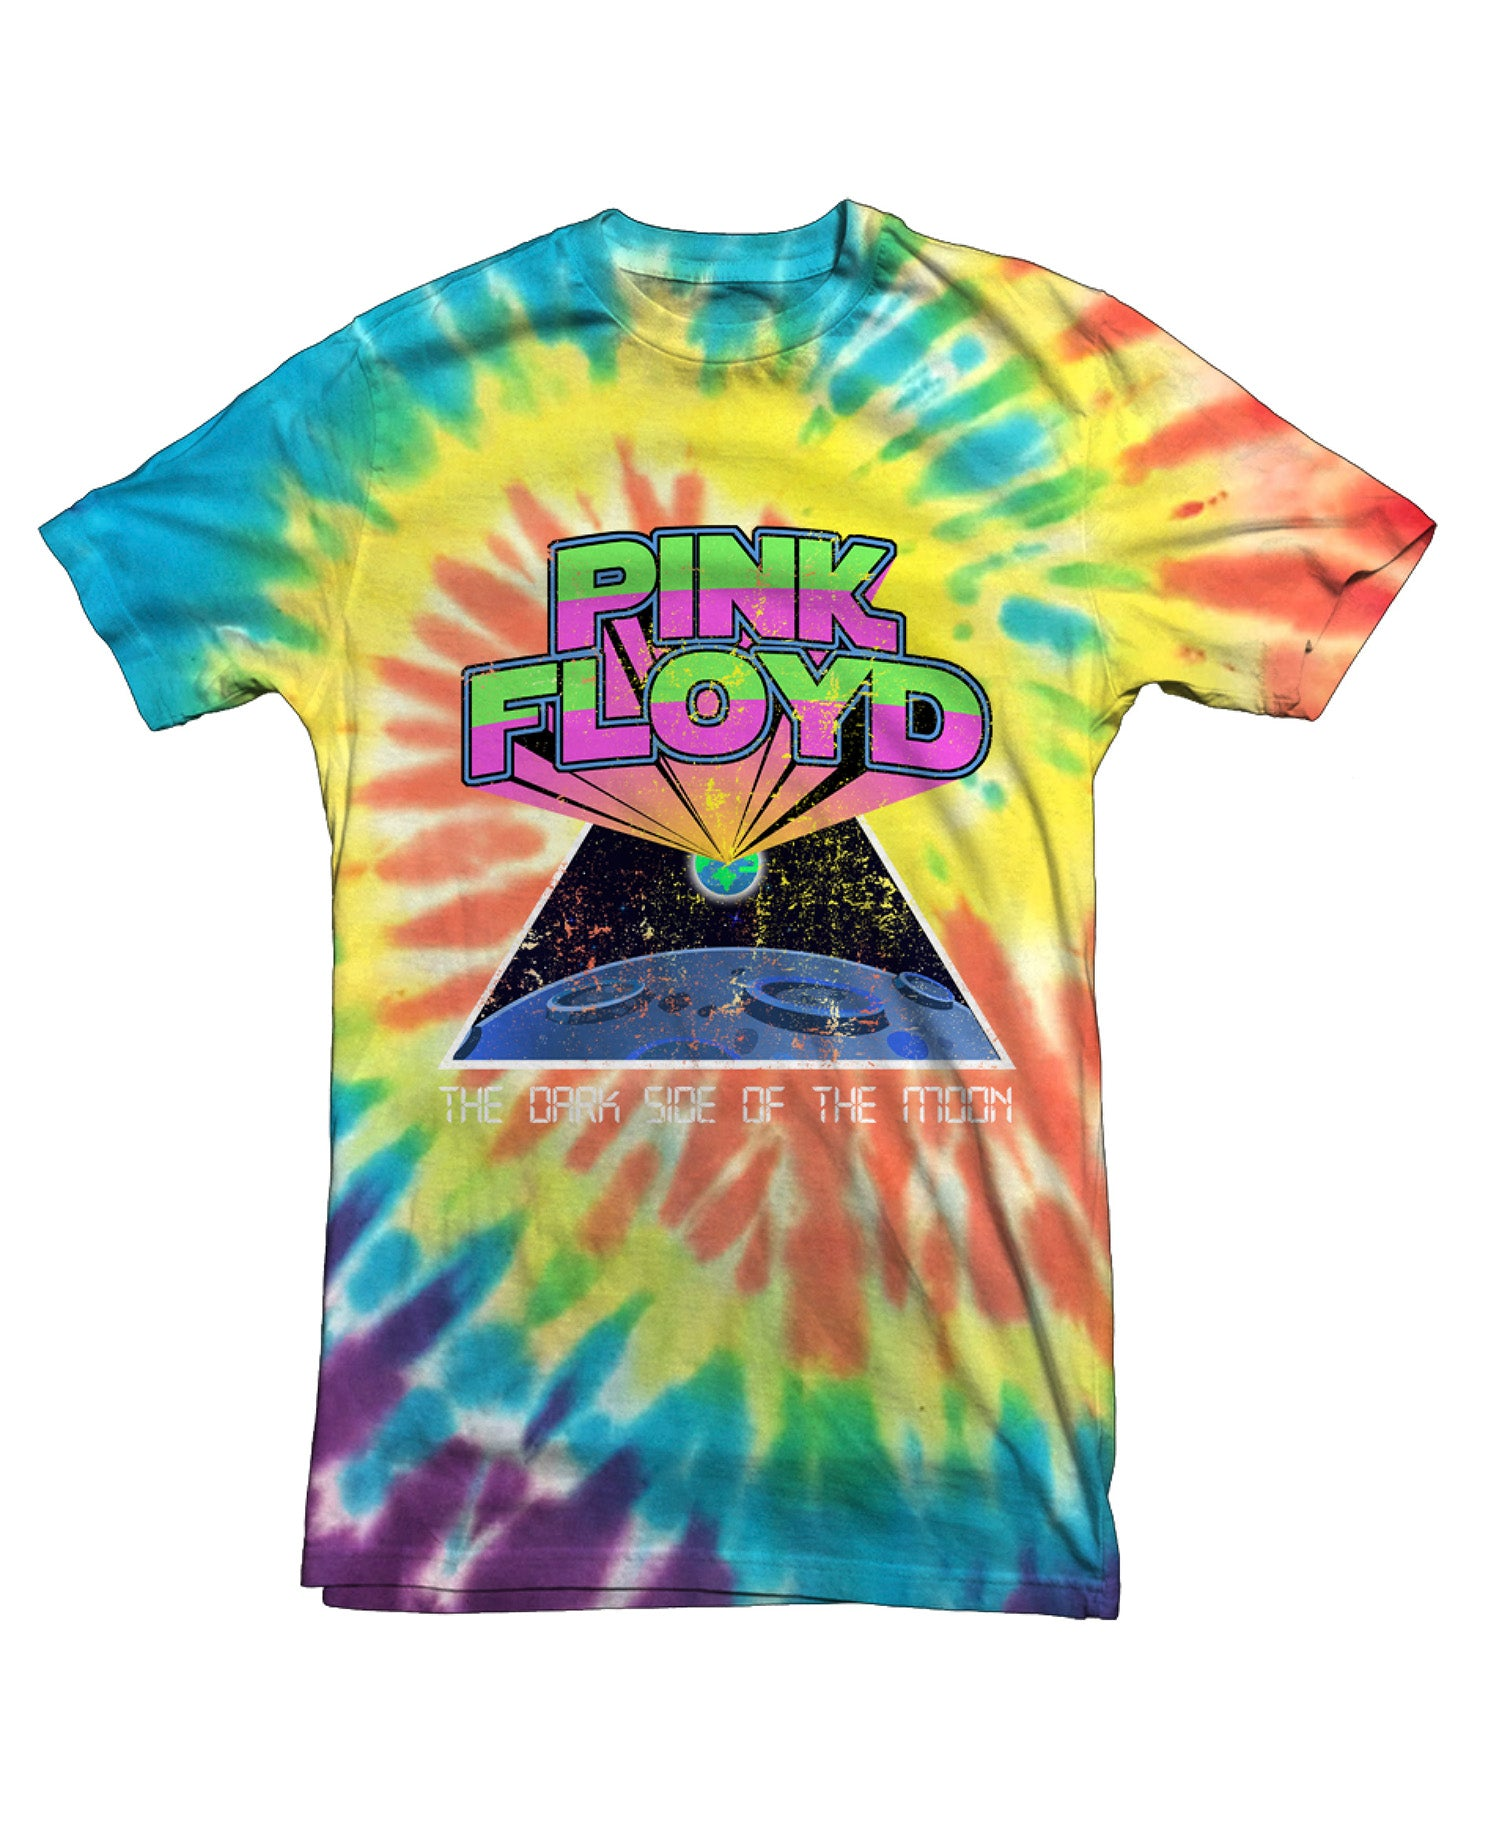 Pink Floyd Tie Dye Tee - Hype Means Nothing